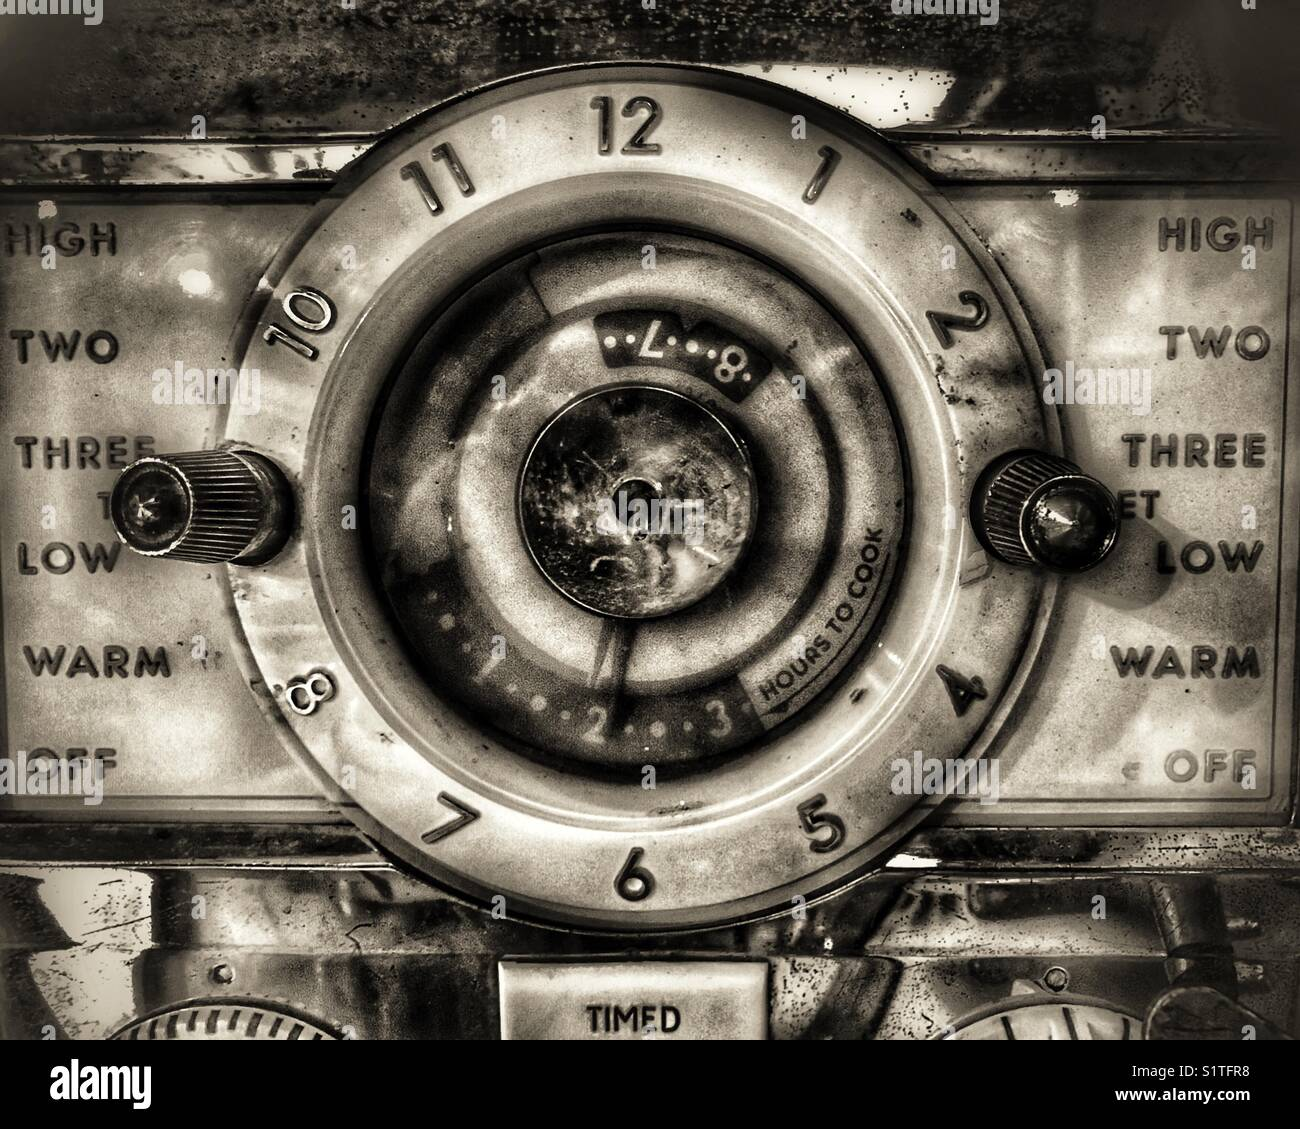 Vintage stove dial - Stock Image